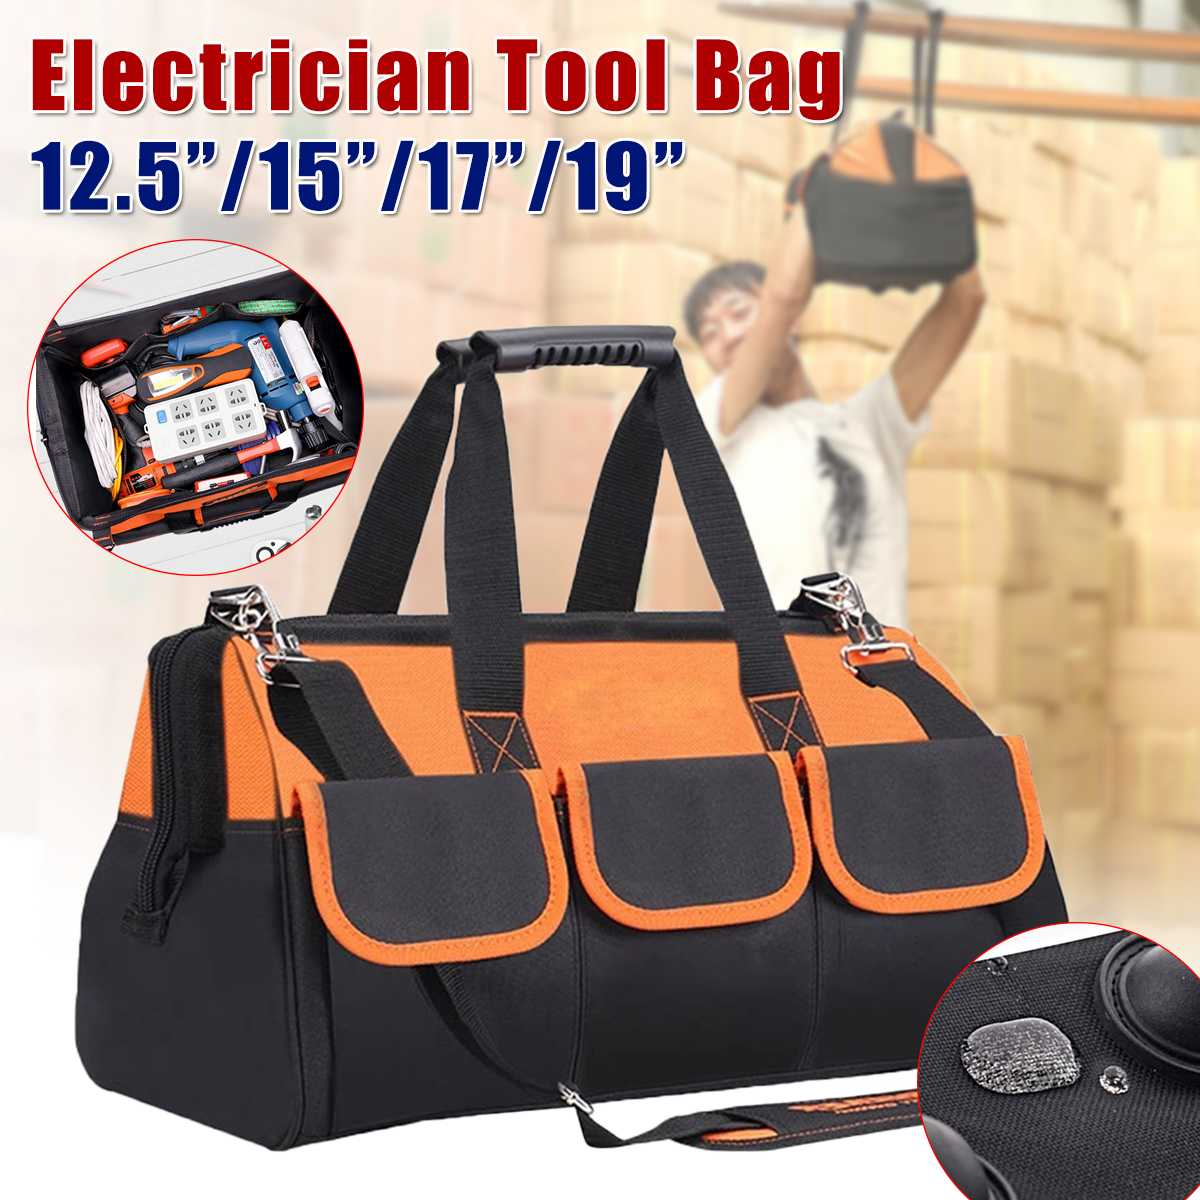 12.5/15/17/19 Inch Multifunction Tool Bag Oxford Cloth Bag Top Wide Mouth Electrician Special Tool Kit Bag Large Capacity